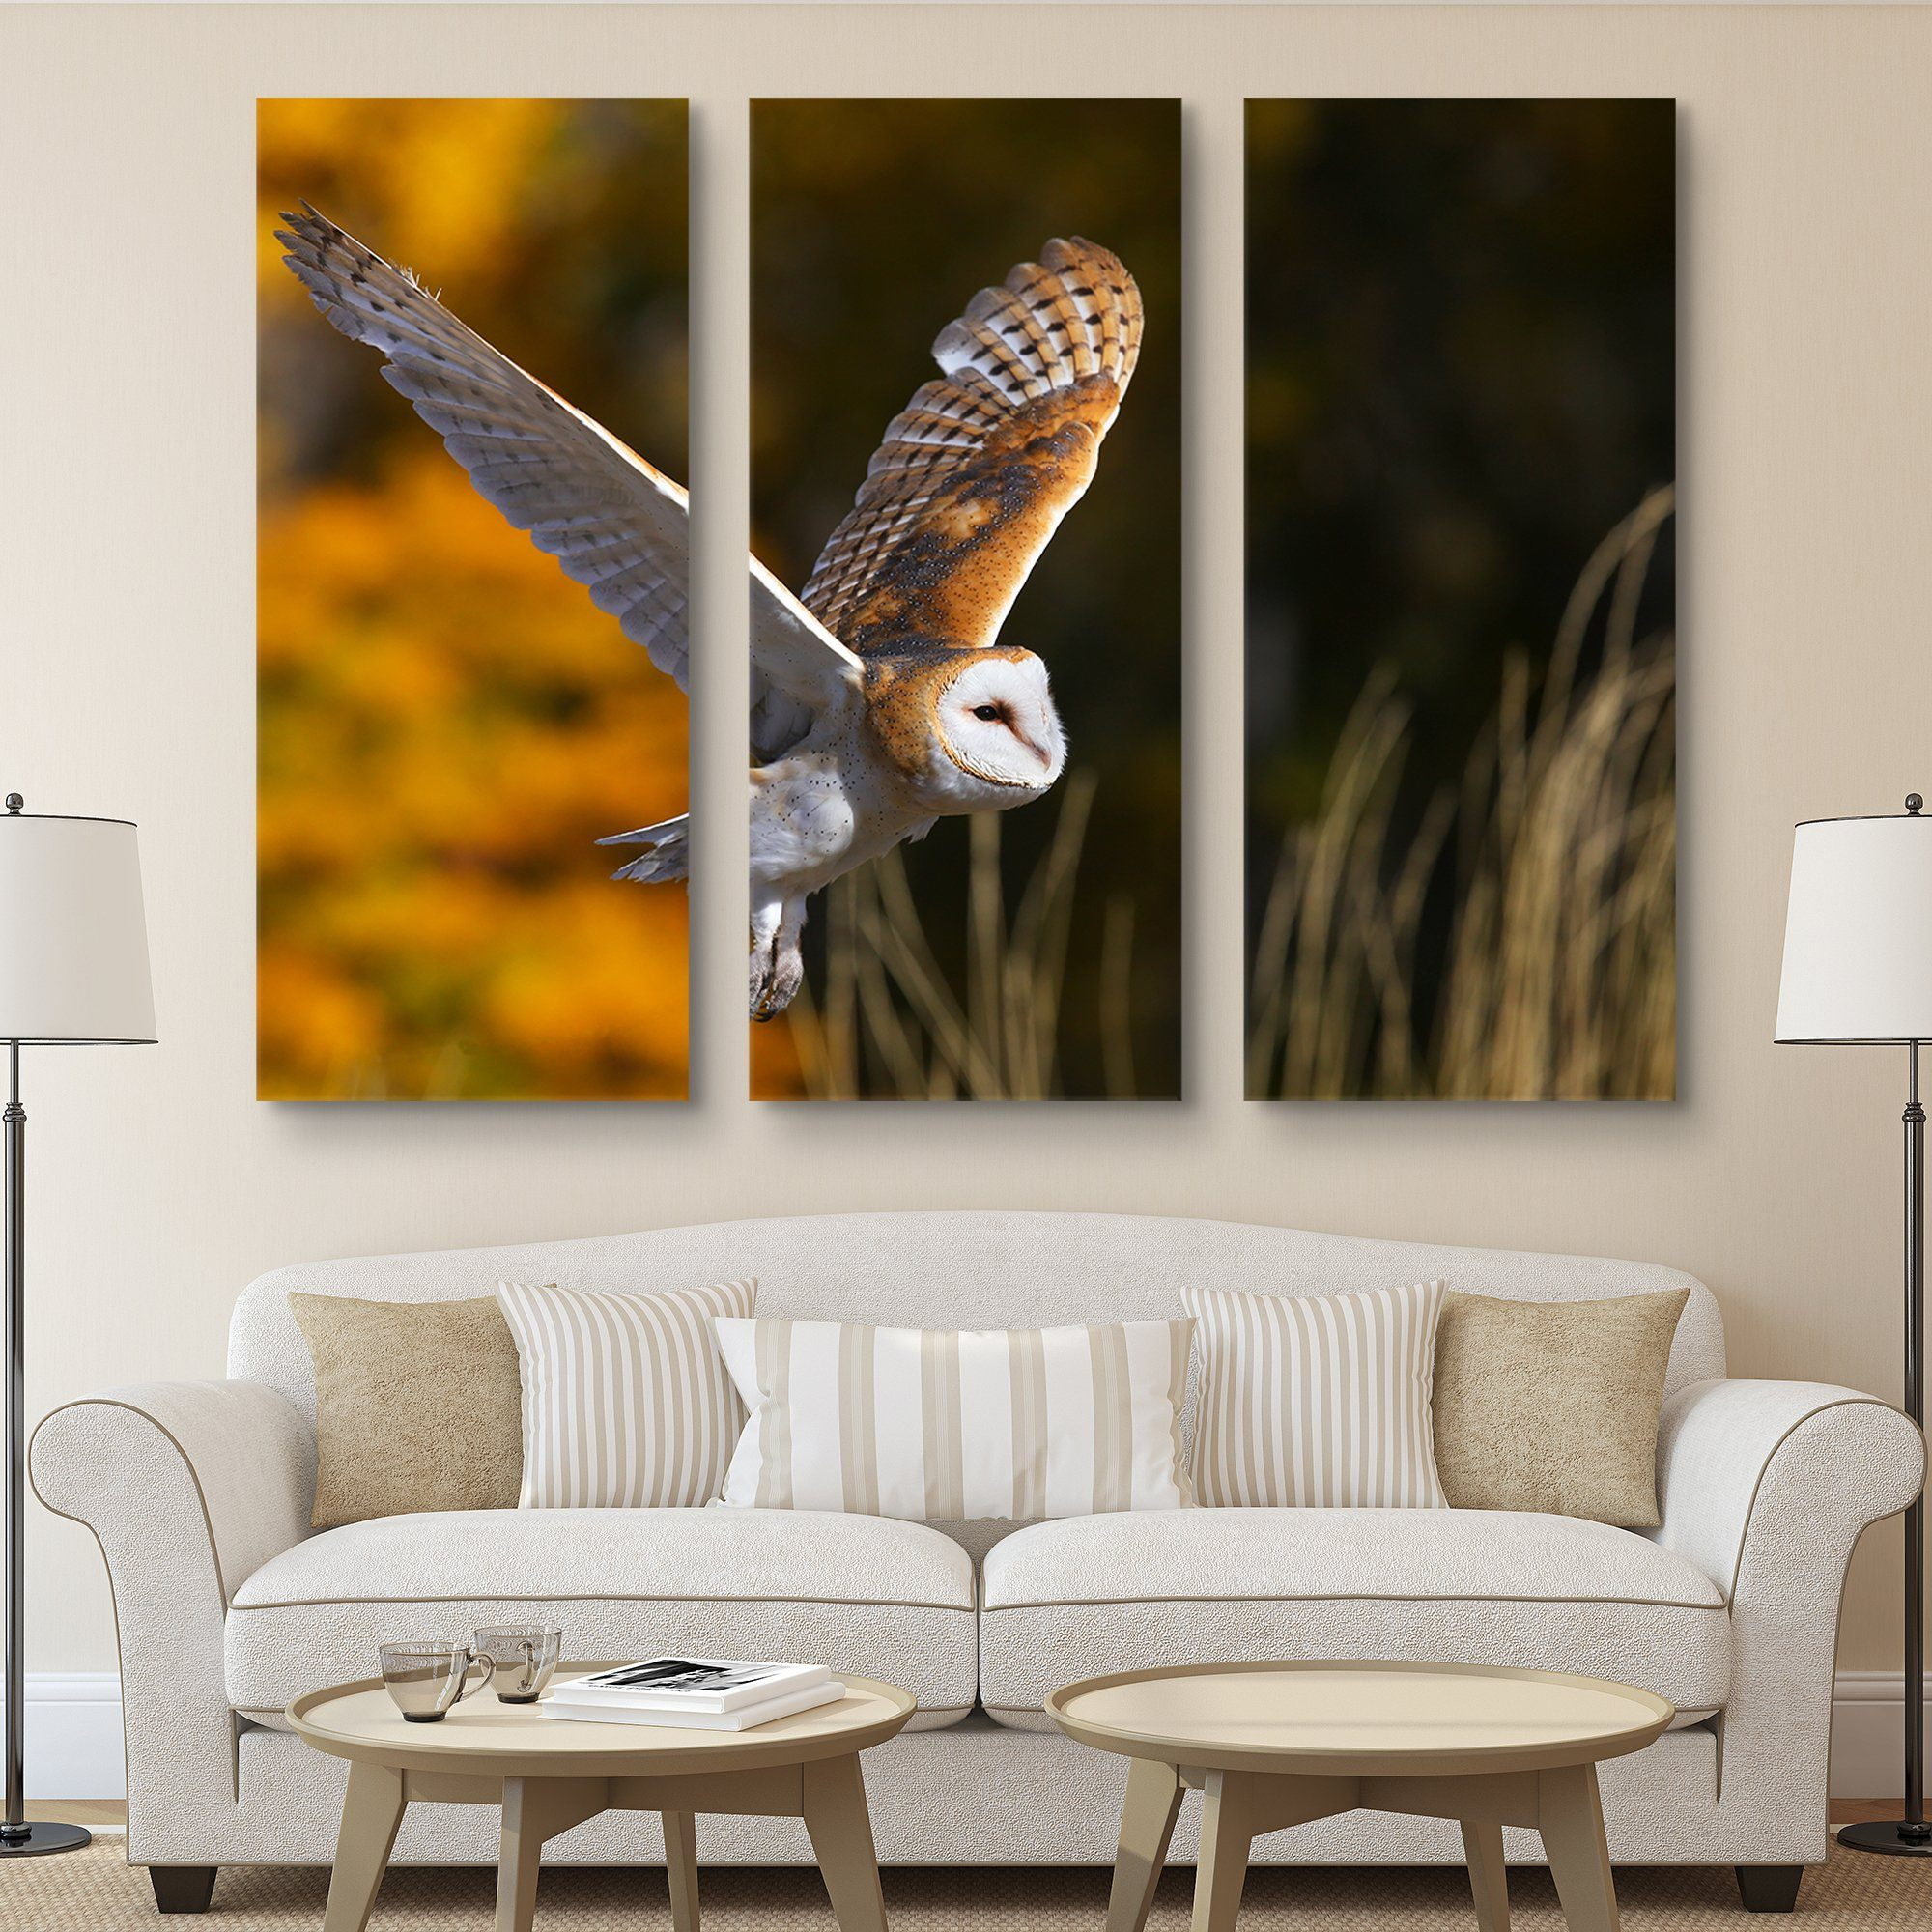 3 piece Barn Owl wall art